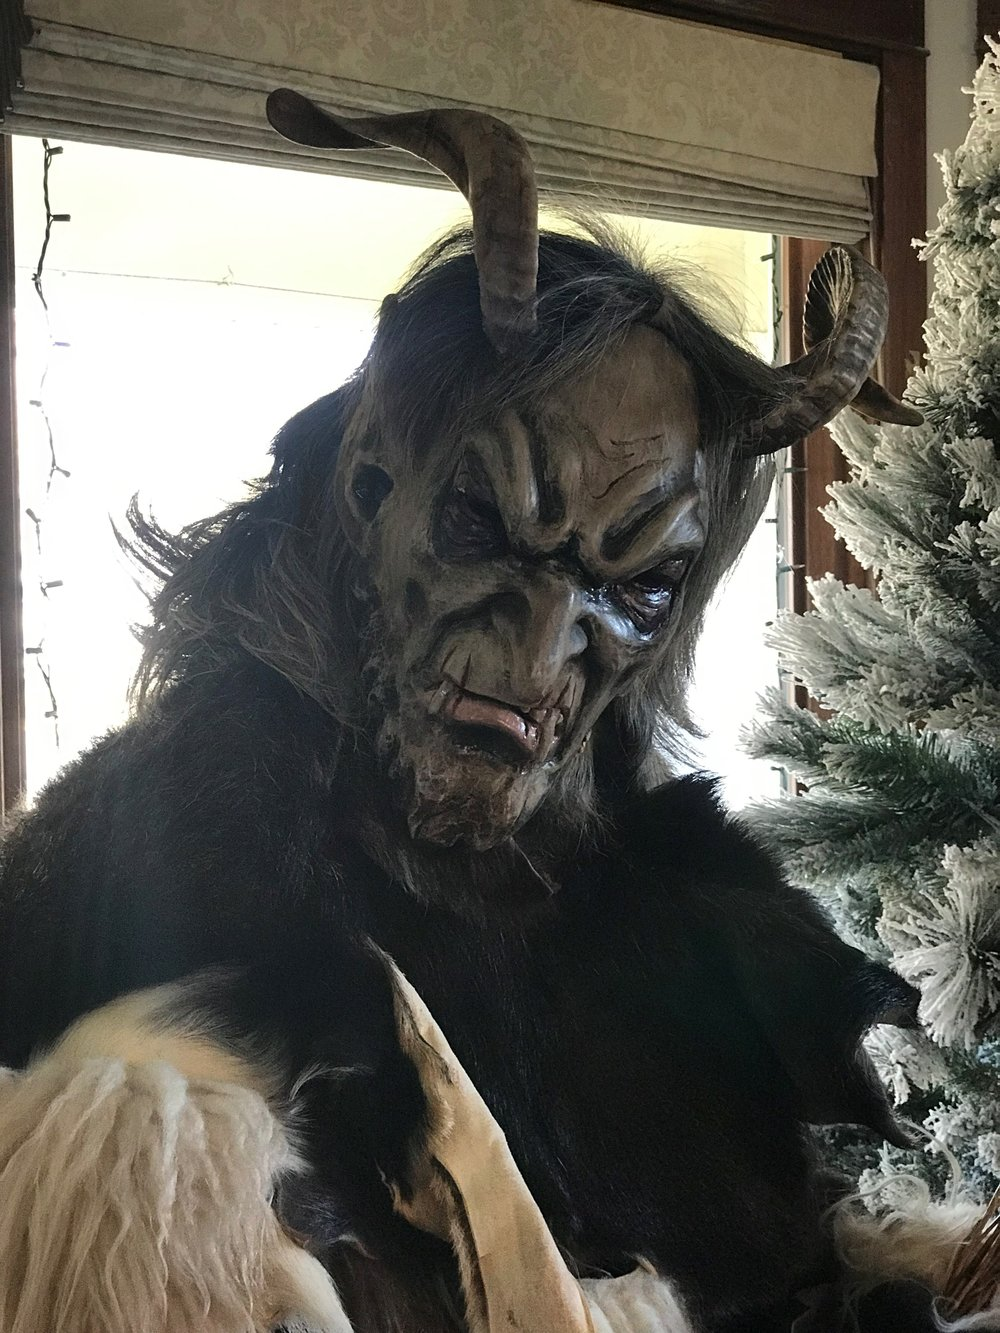 Andrew Skic portrays Krampus, the ancient central European half goat, half demon who punishes naughty children at Christmas